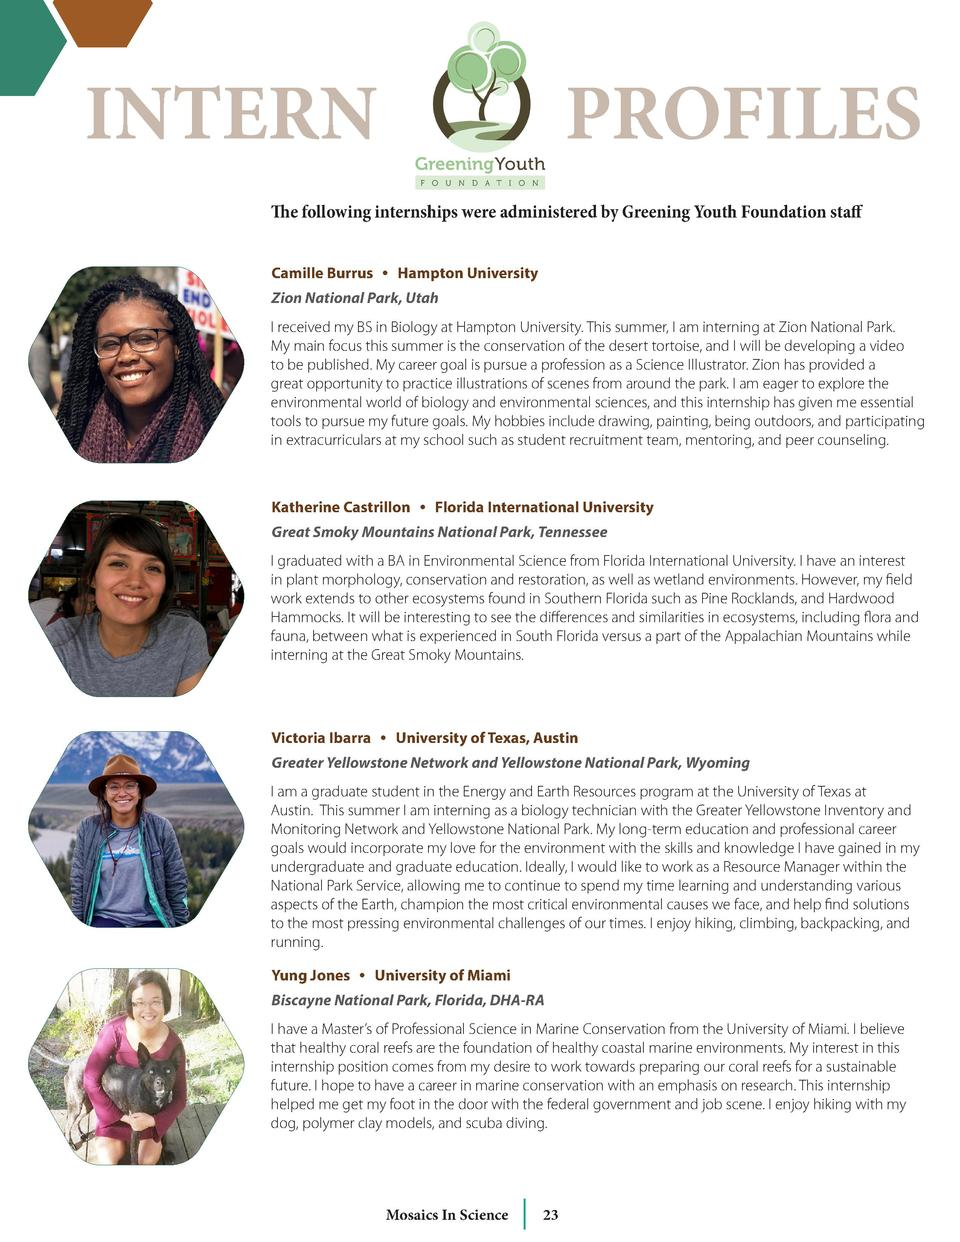 INTERN  PROFILES  The following internships were administered by Greening Youth Foundation staff Camille Burrus     Hampto...